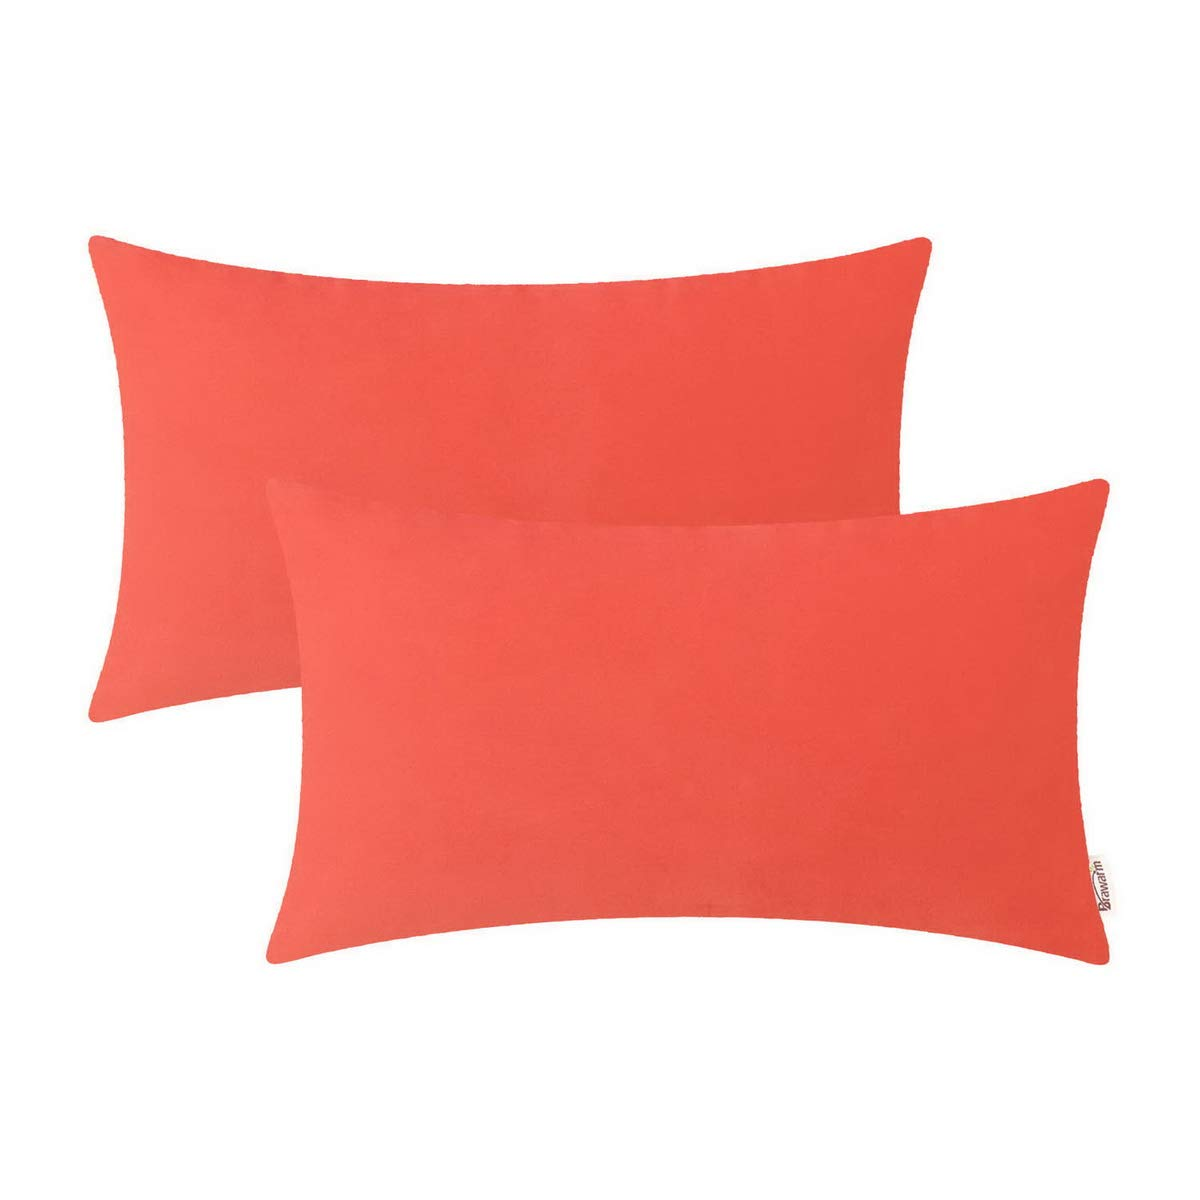 BRAWARM Pack of 2 Cozy Bolster Pillow Covers Cases for Couch Sofa Home Decoration Solid Dyed Soft Velvet Both Sides 12 X 20 Inches Living Coral